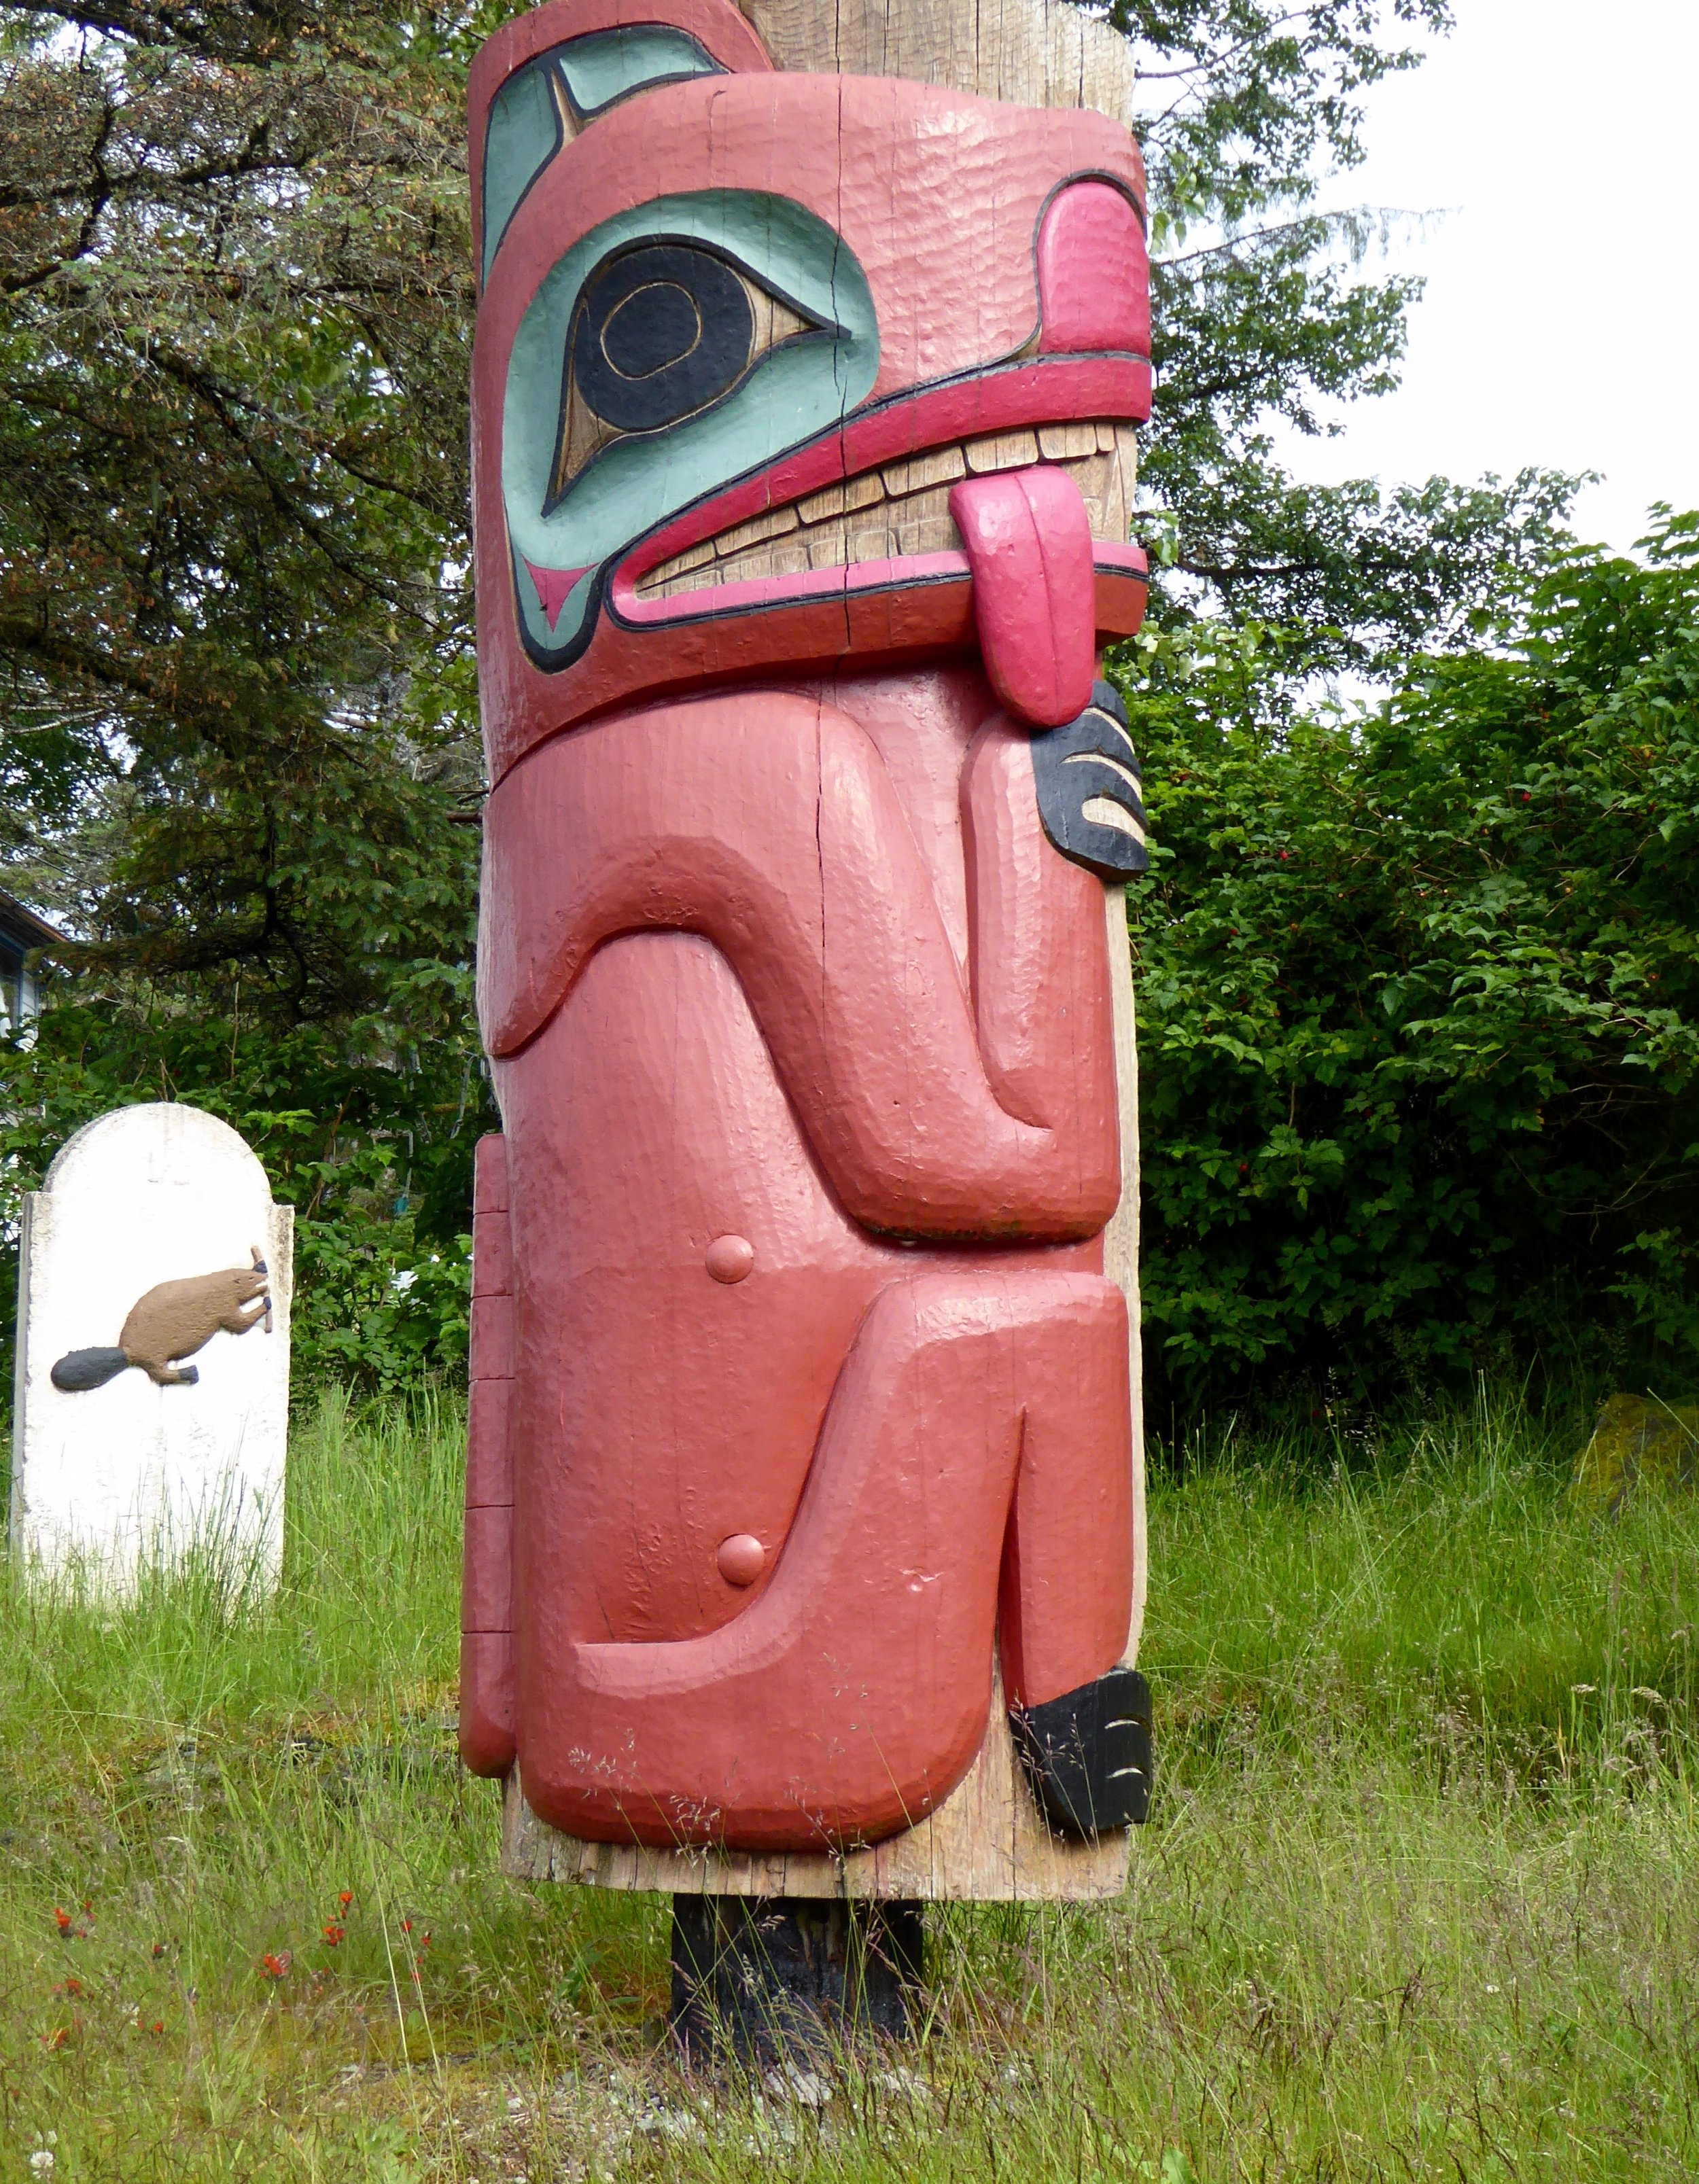 This totem was about Seward, when he came to visit the village. He was given many gifts, but did not give any out. Therefore they made a ridicule pole about him.